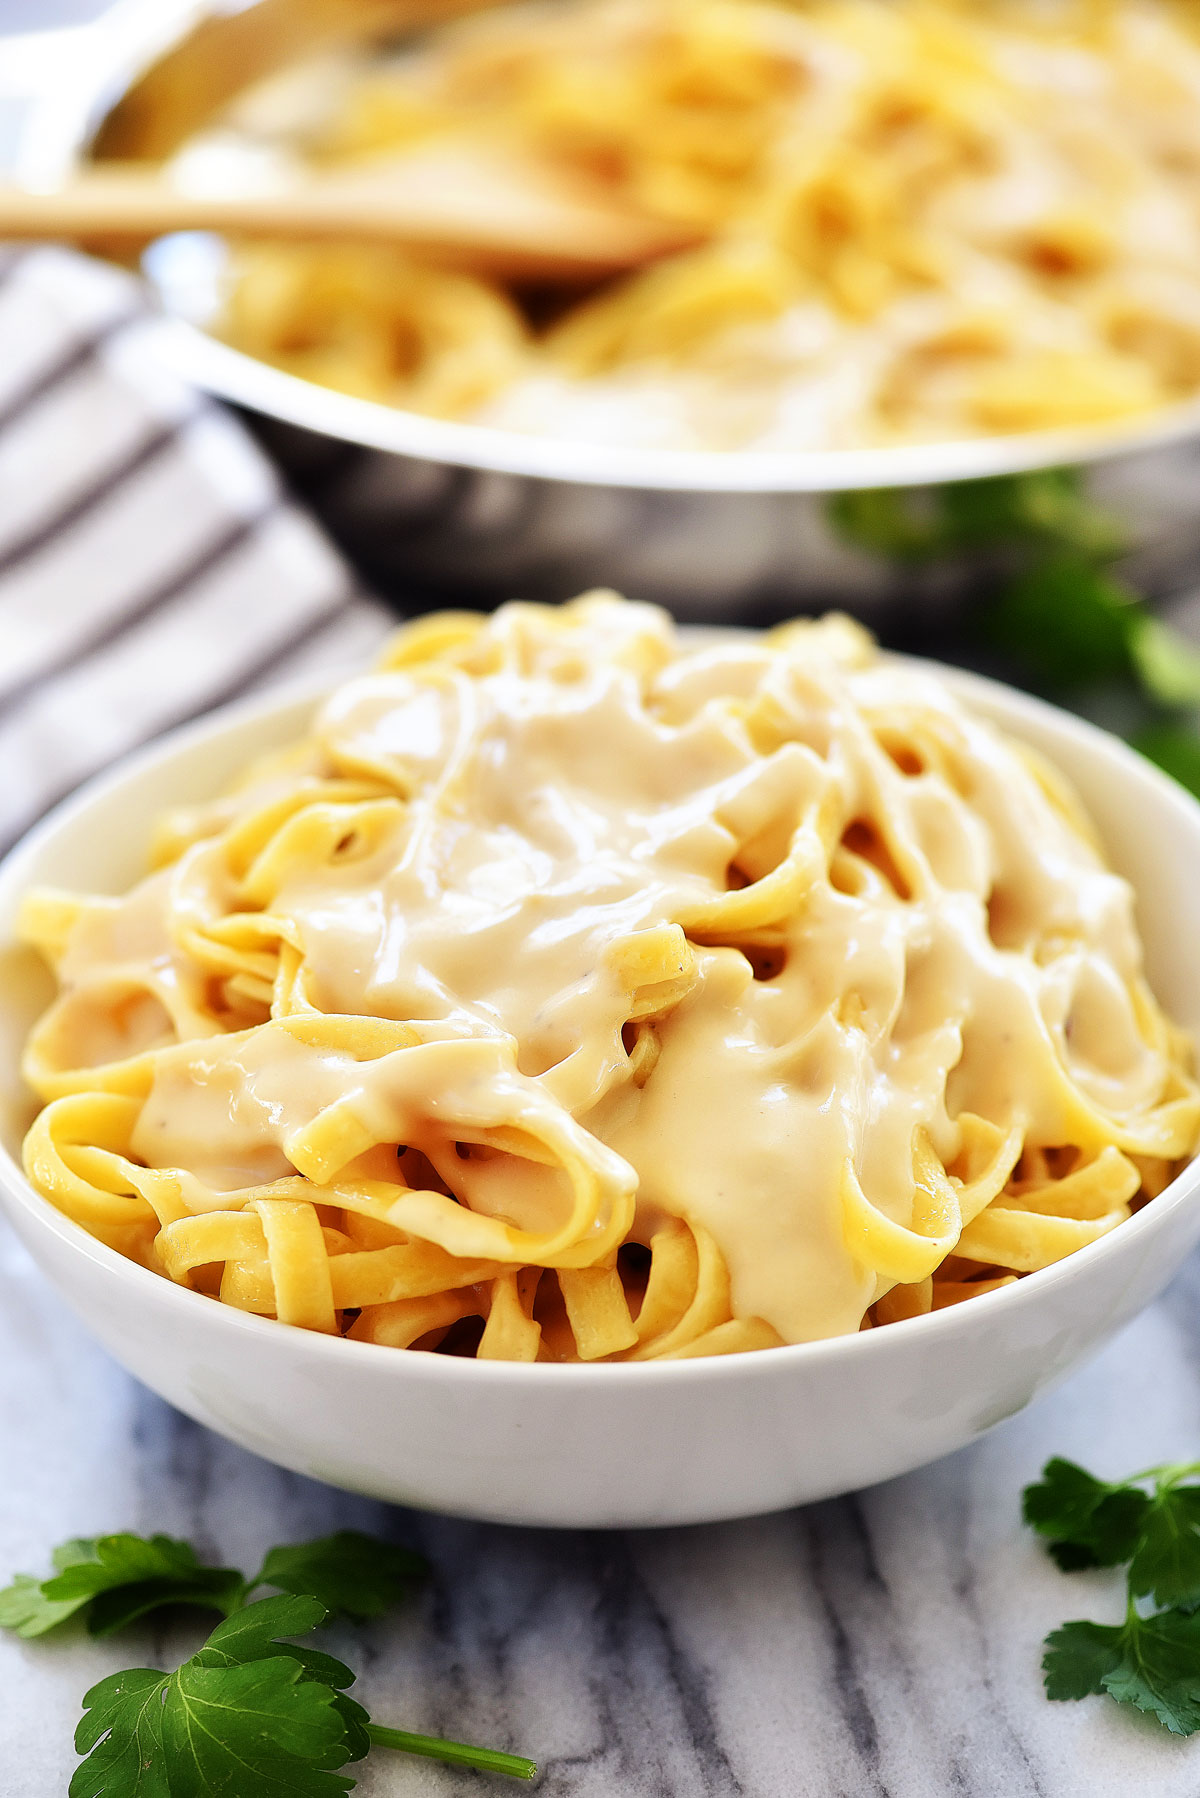 This fettuccine Alfredo is a creamy Italian pasta that uses lighter ingredients. Life-in-the-Lofthouse.com